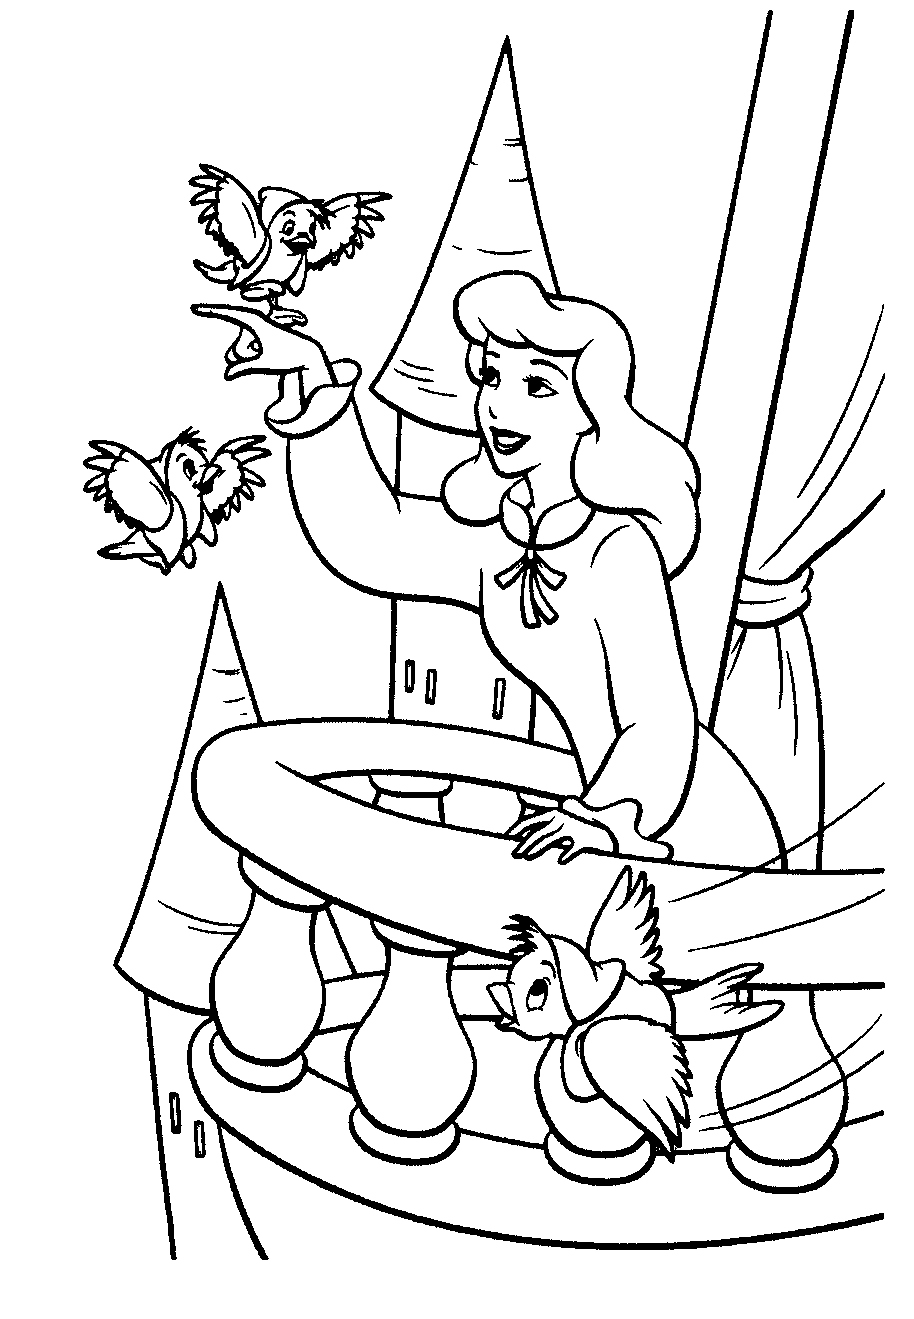 cinderella coloring pages to print free printable cinderella coloring pages for kids cool2bkids pages print coloring to cinderella